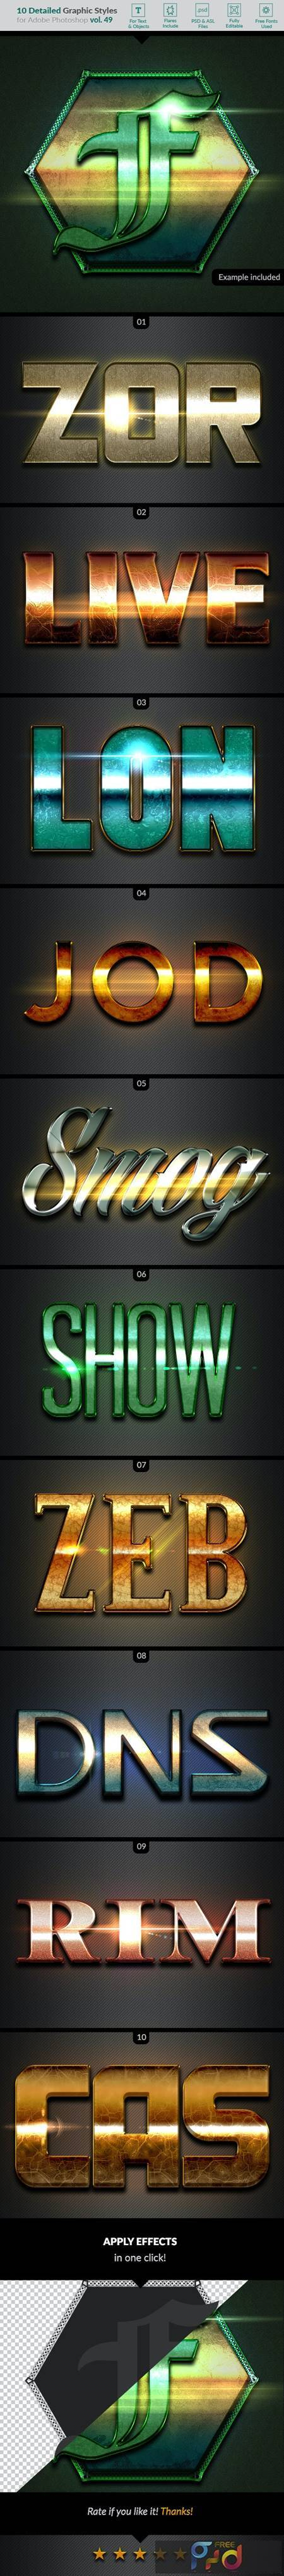 10 Text Effects Vol. 49 26466672 1